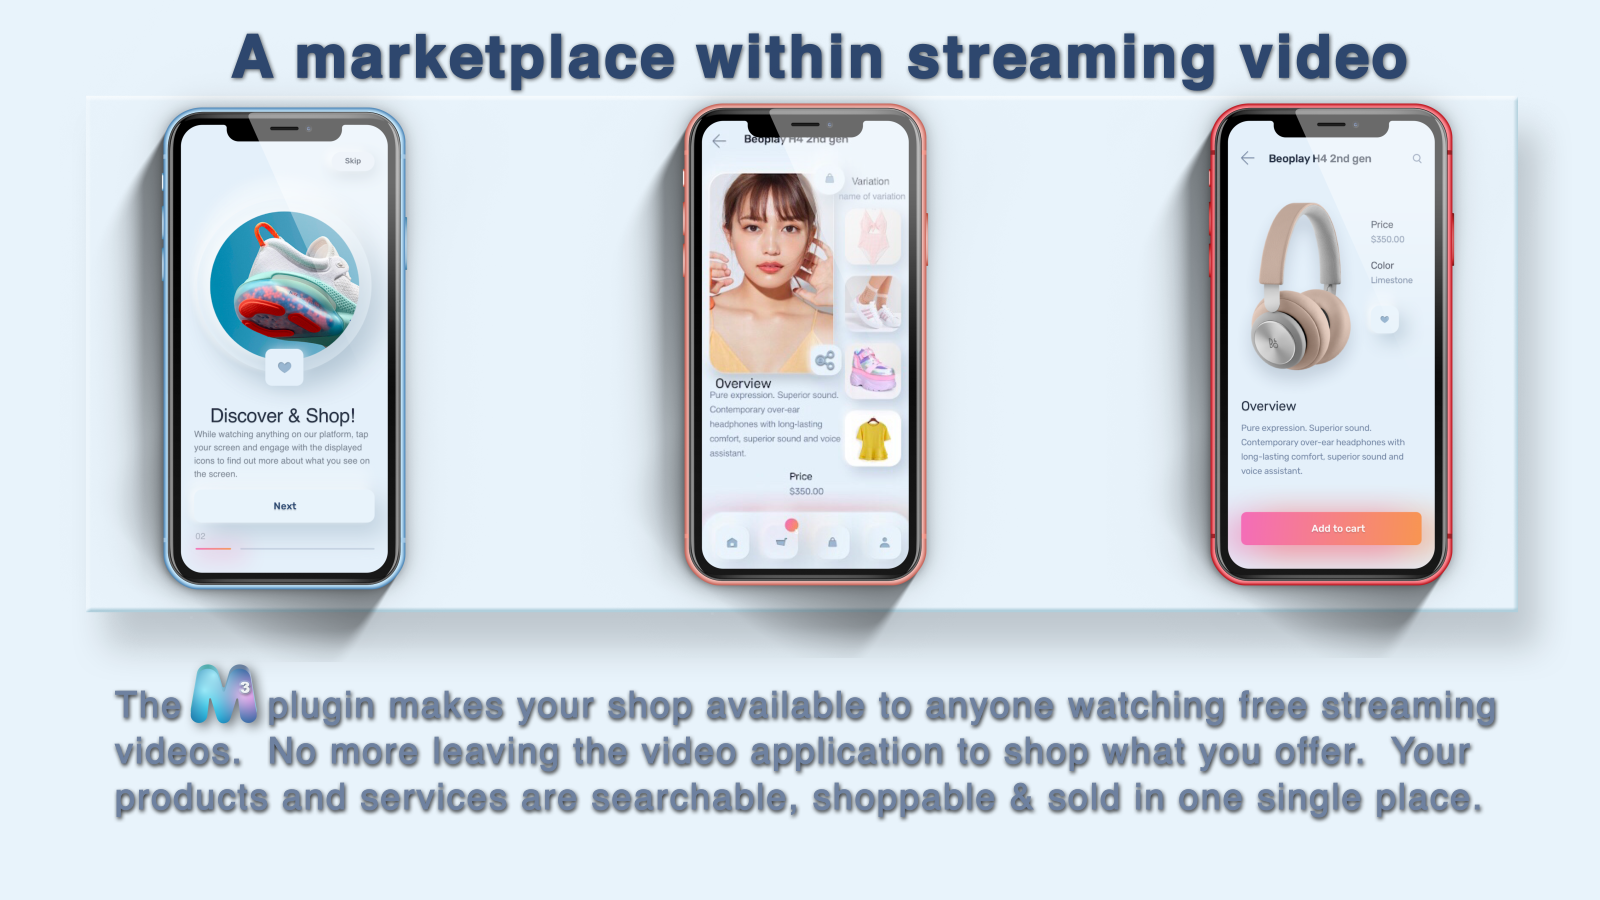 No more leaving the video application to shop what you offer.